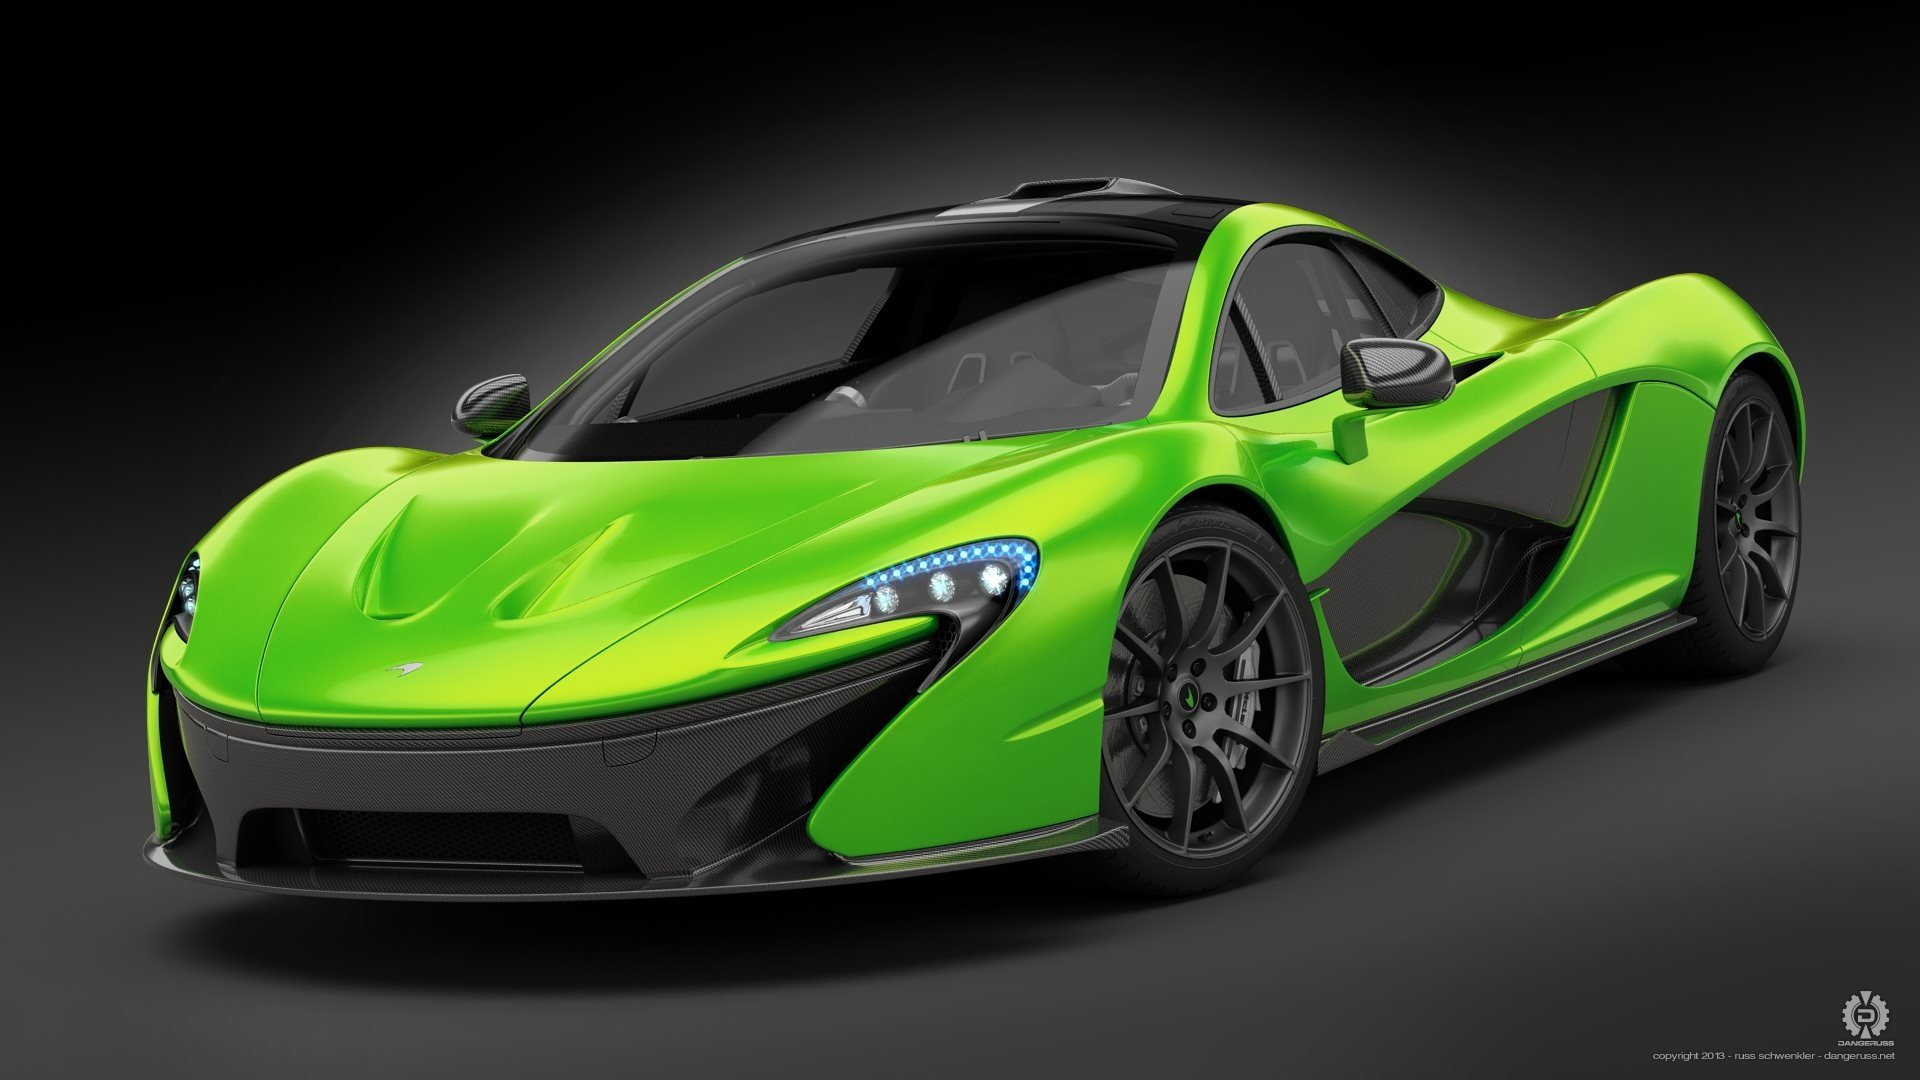 147 Mclaren P1 Hd Wallpapers Background Images Wallpaper Abyss